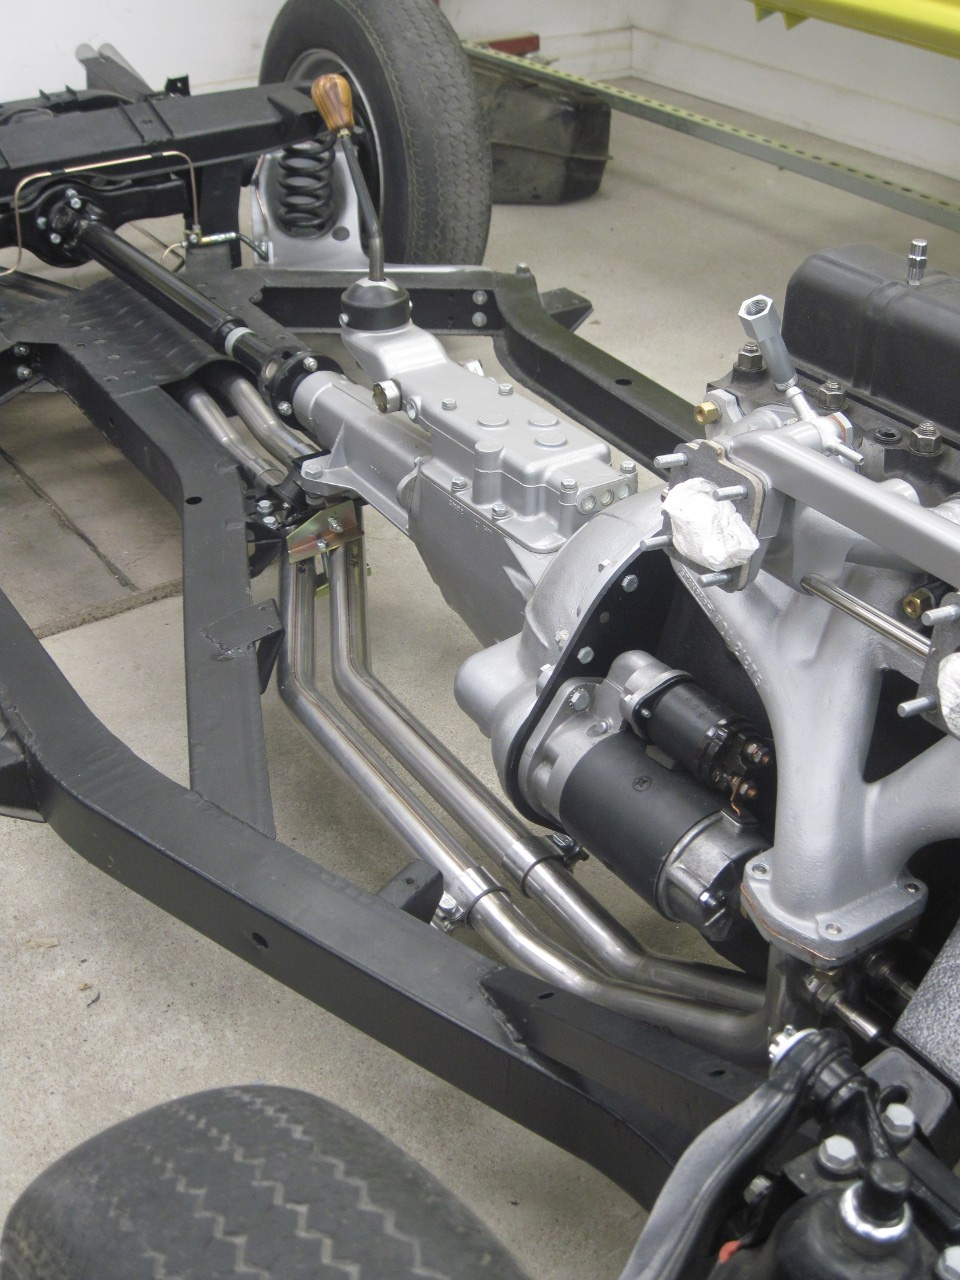 Stainless Exhaust Tr6 Tech Forum Triumph Experience